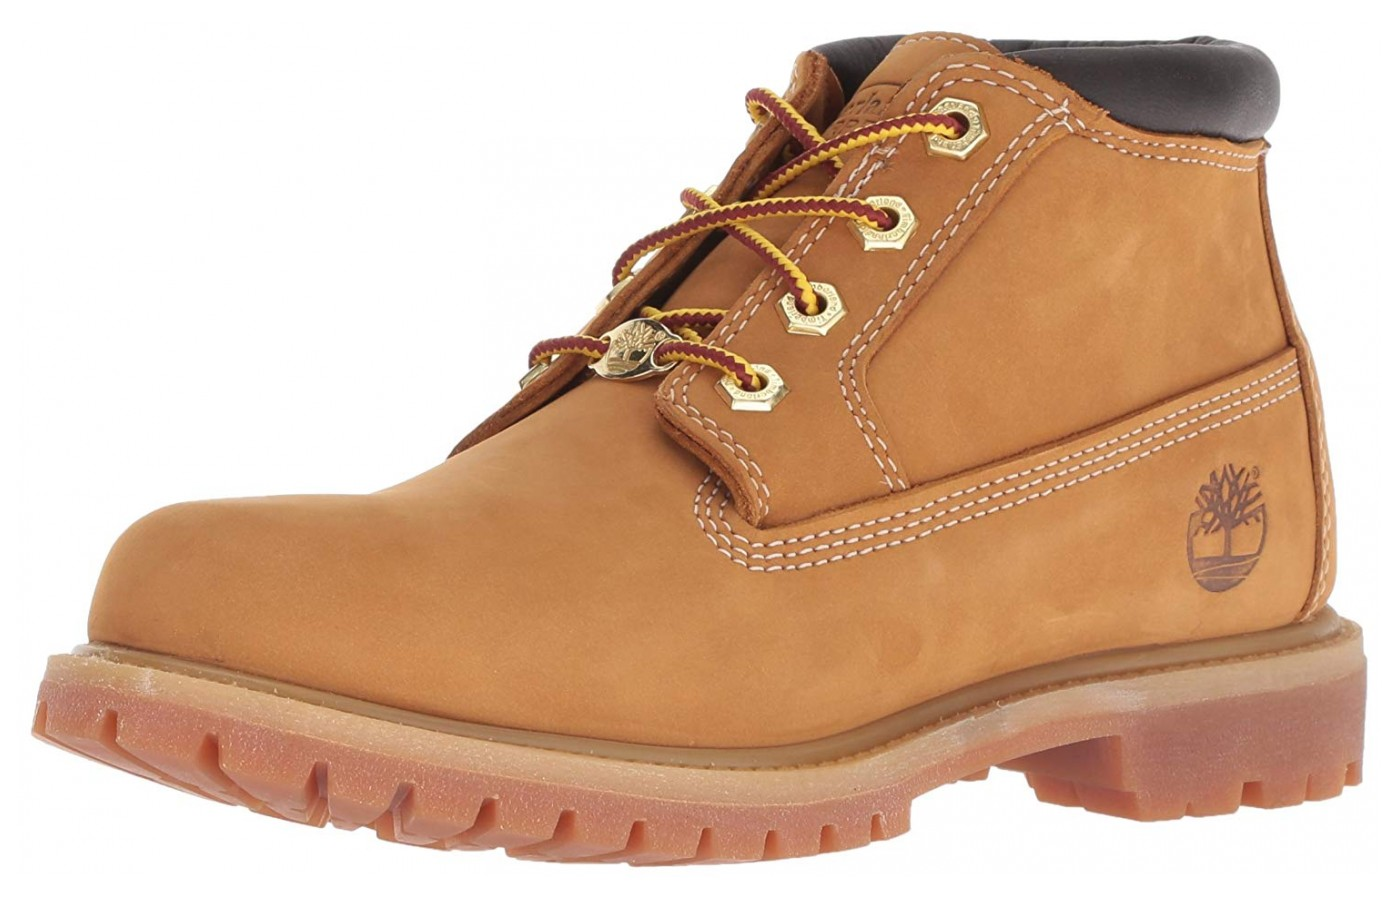 The Timberland Nellie offers a soft style, comfortable fit paired with durable waterproof leather.